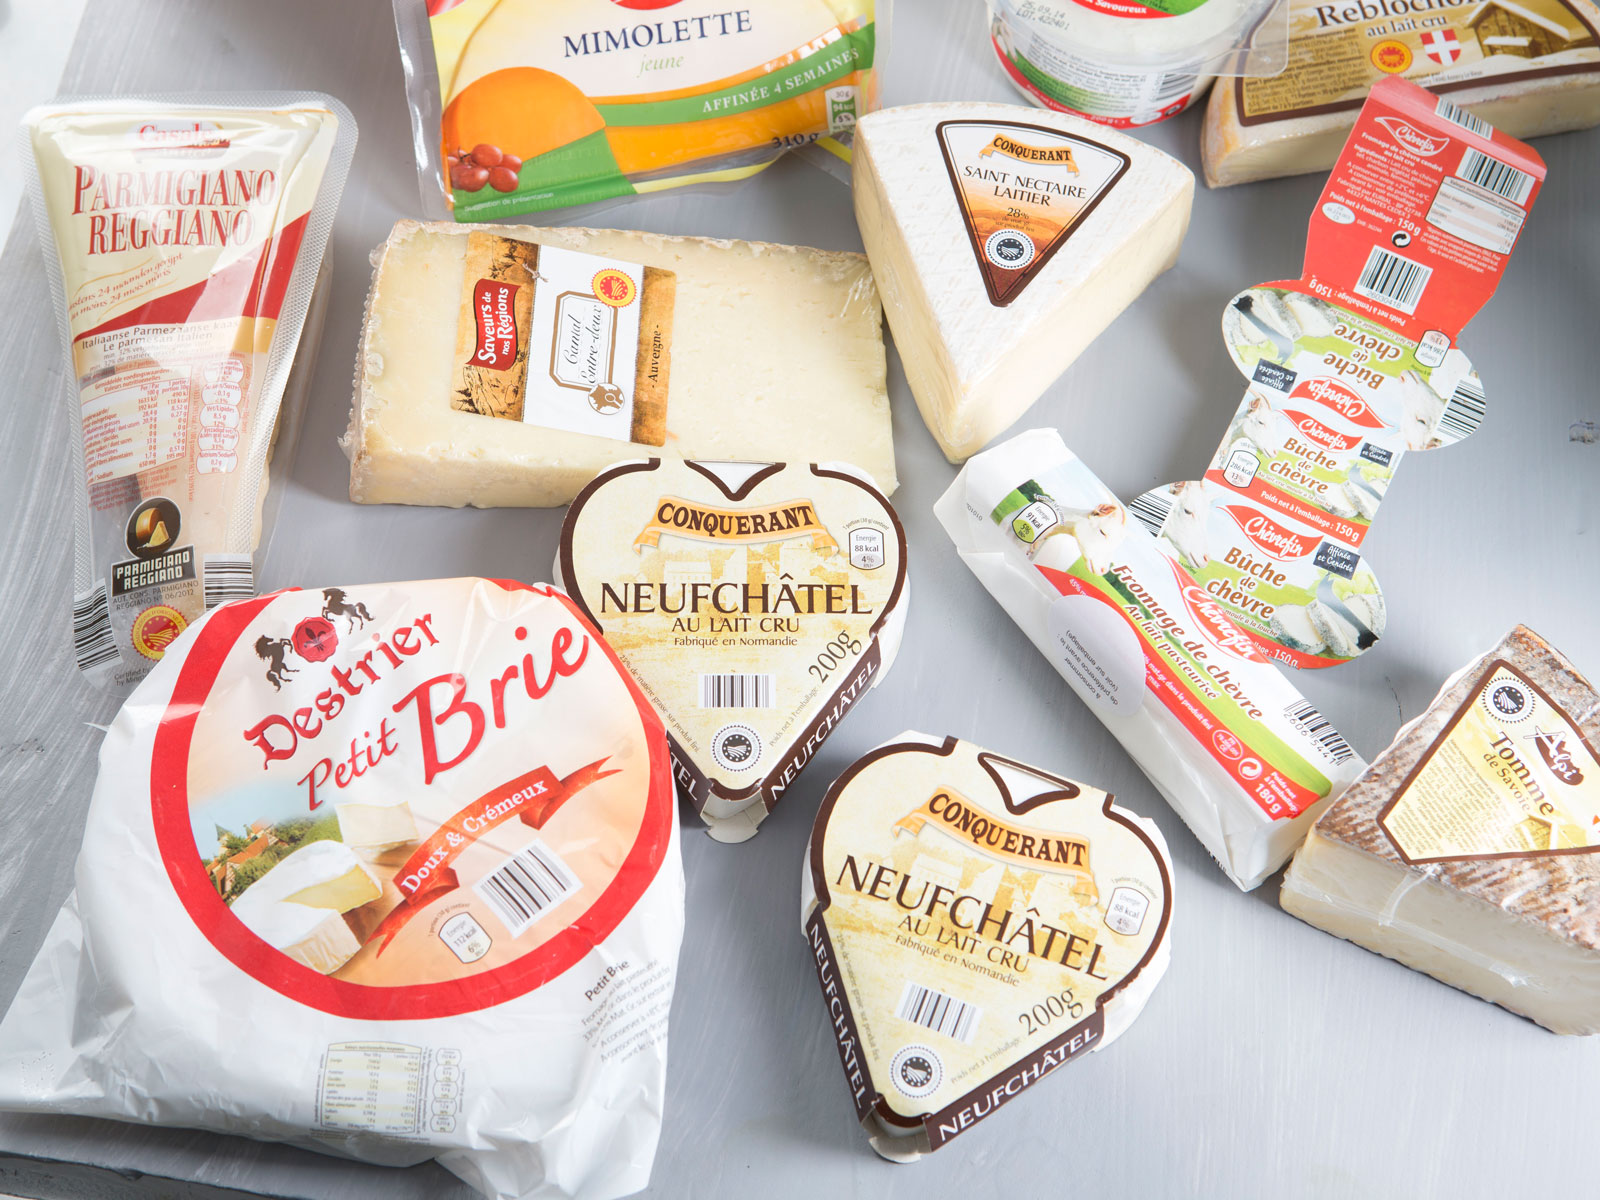 Imported European Cheese Prices Could Skyrocket Under New Tariff Proposals